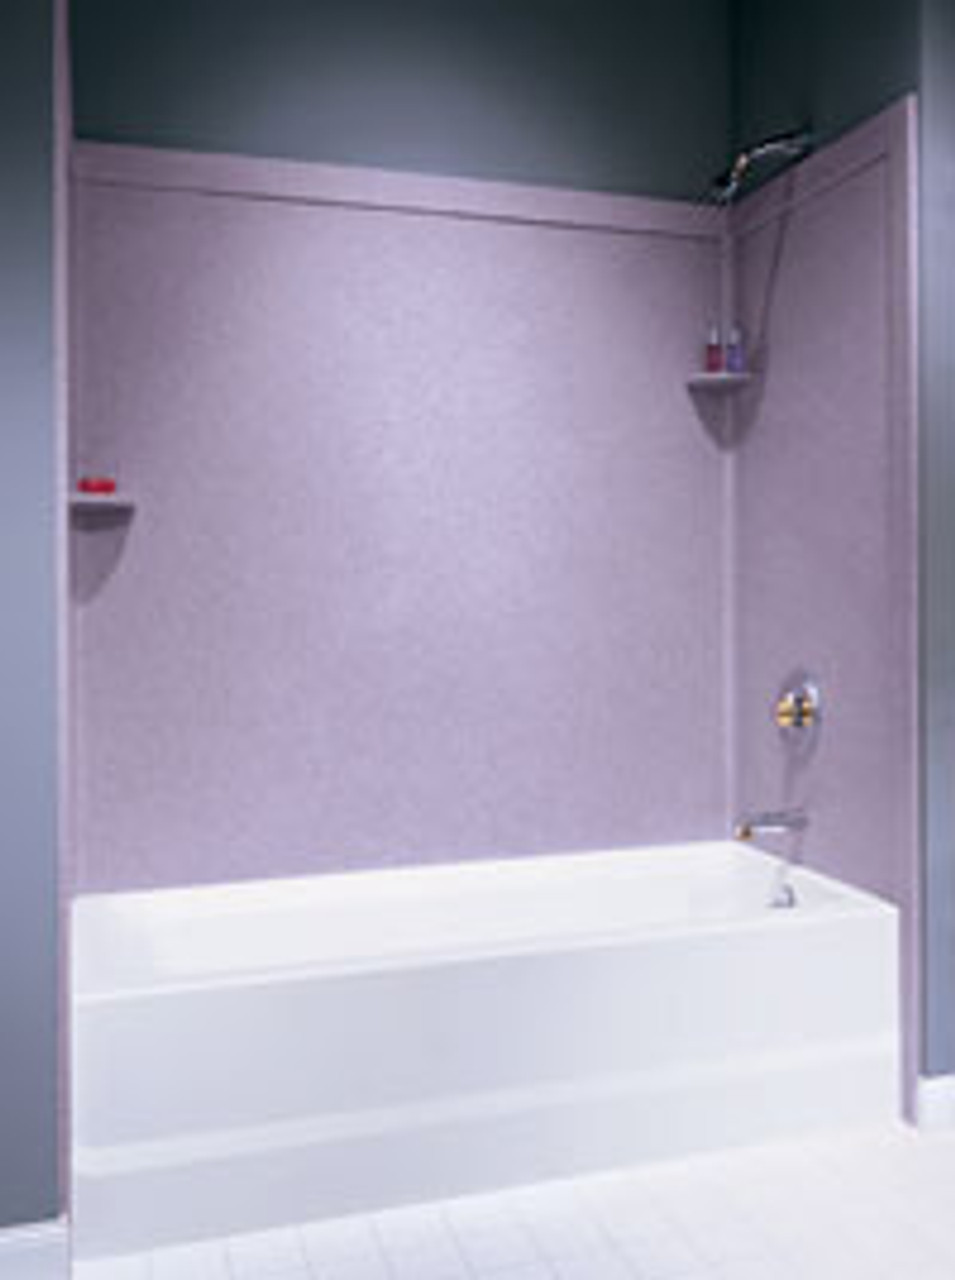 Swanstone Ssit 60 3 Bathtub 3 Panel Wall Kit With Integral Trim Aggregate Color Swanstone Products Eplumbing Products Inc